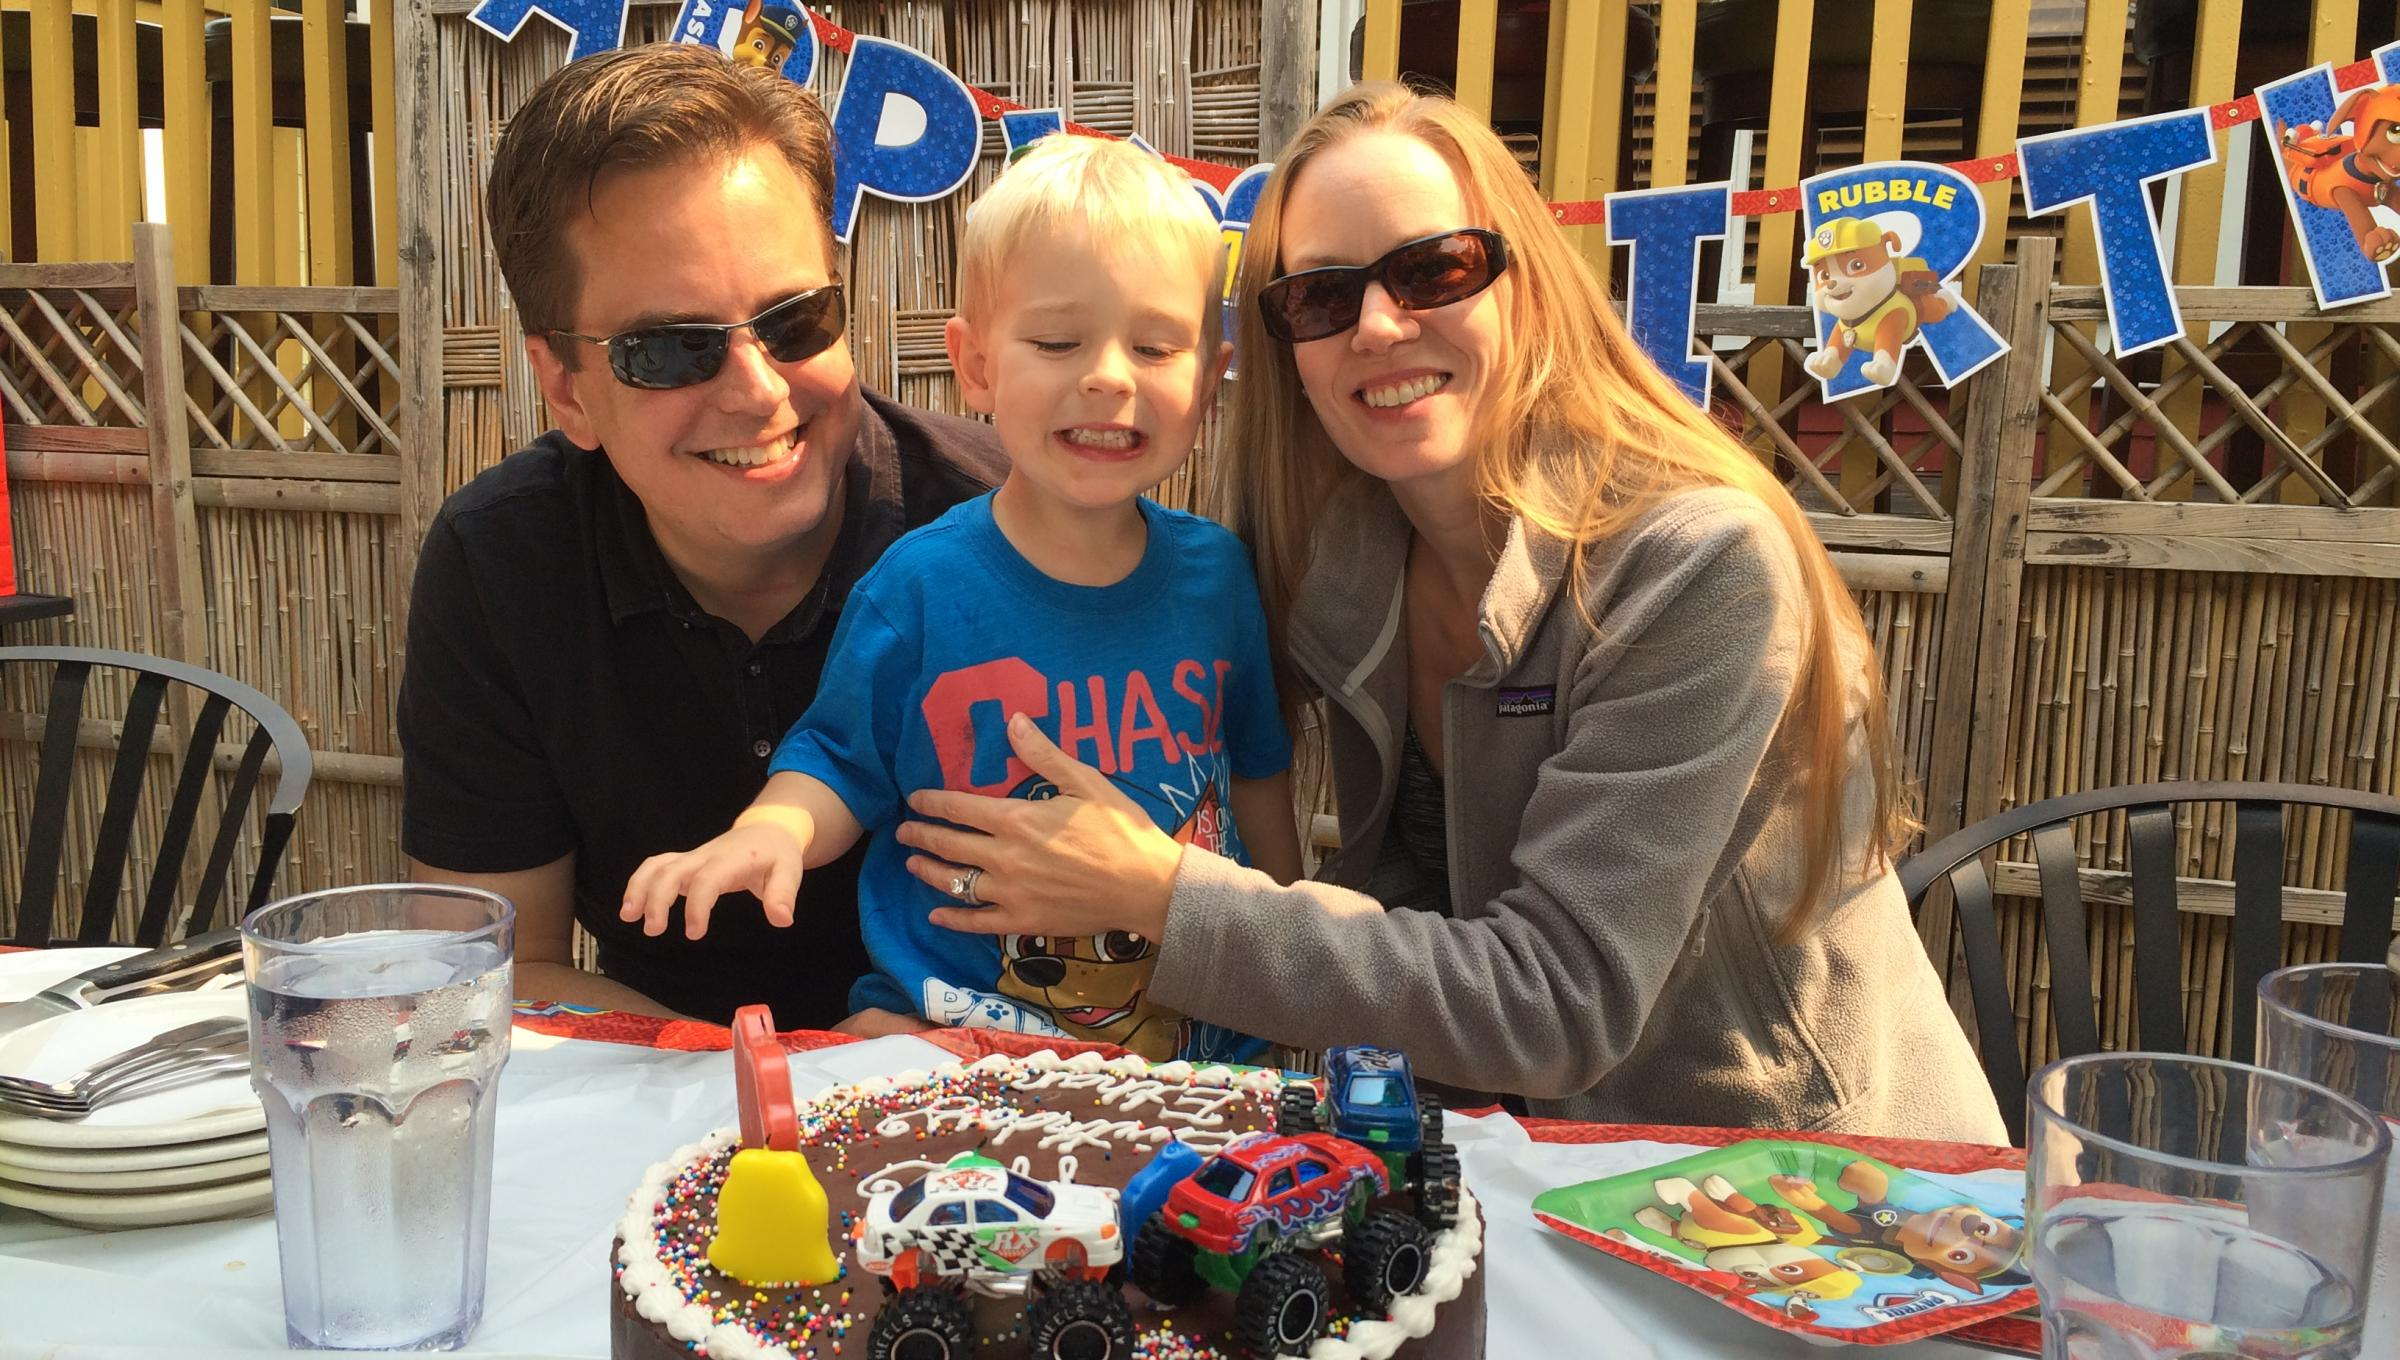 Lacey Siekas with her son and husband celebrating her son's birthday